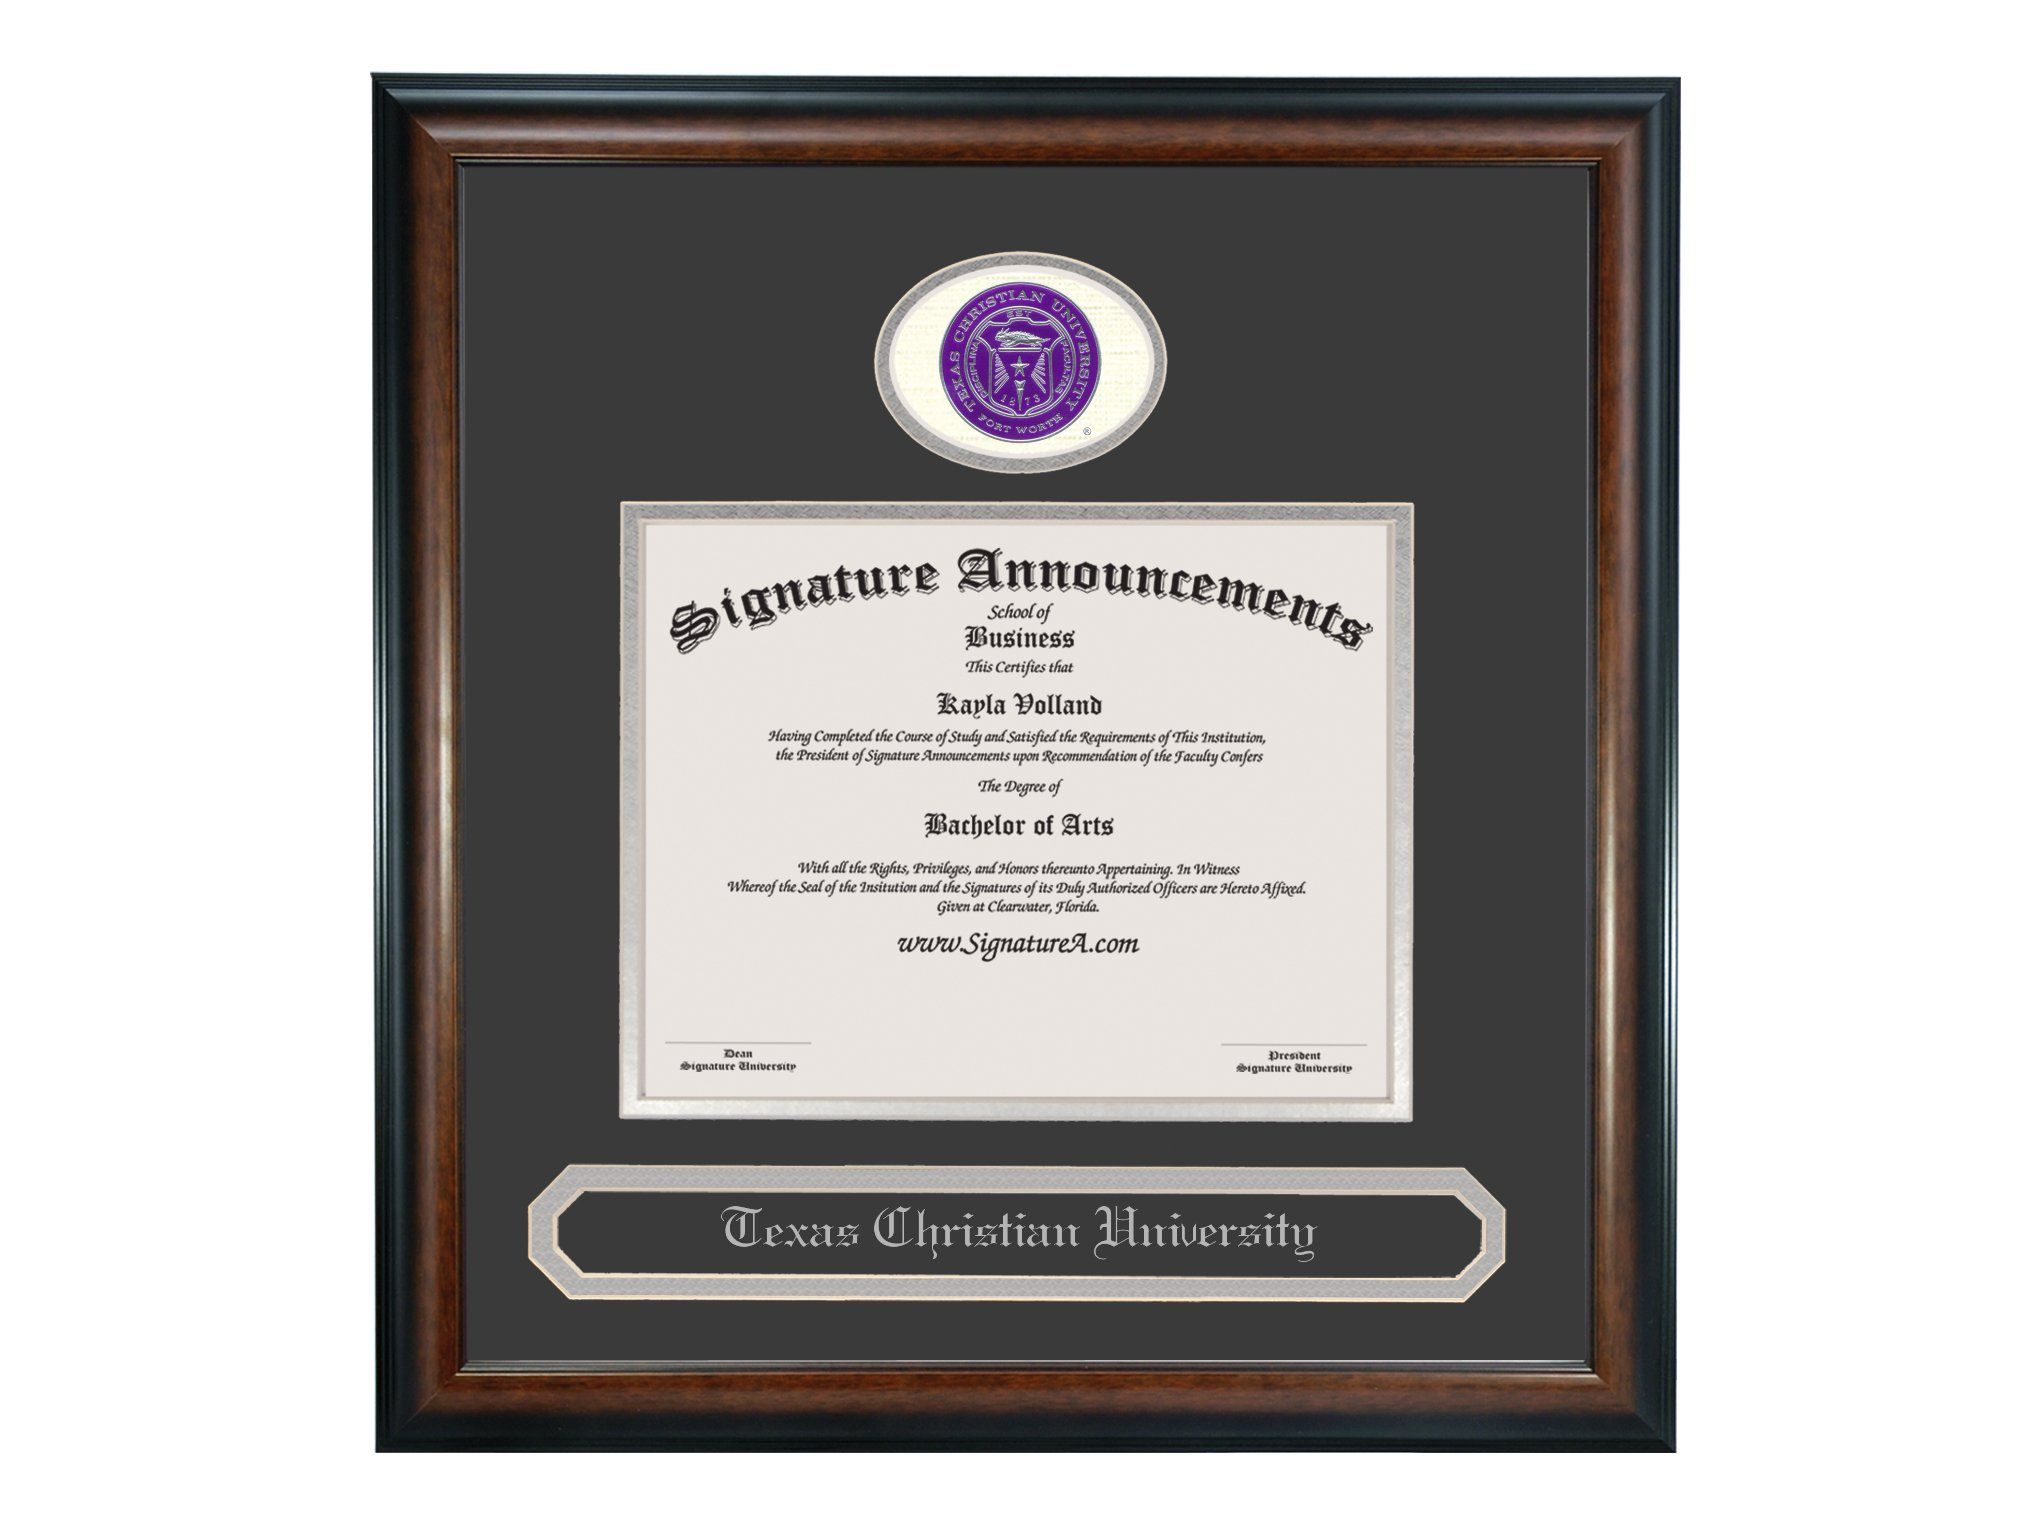 Signature Announcements Texas Christian University (TCU) Undergraduate and Graduate/Professional/Doctor Graduation Diploma Frame with Sculpted Foil Seal & Name (Matte Mahogany, 16 x 16) by Signature Announcements